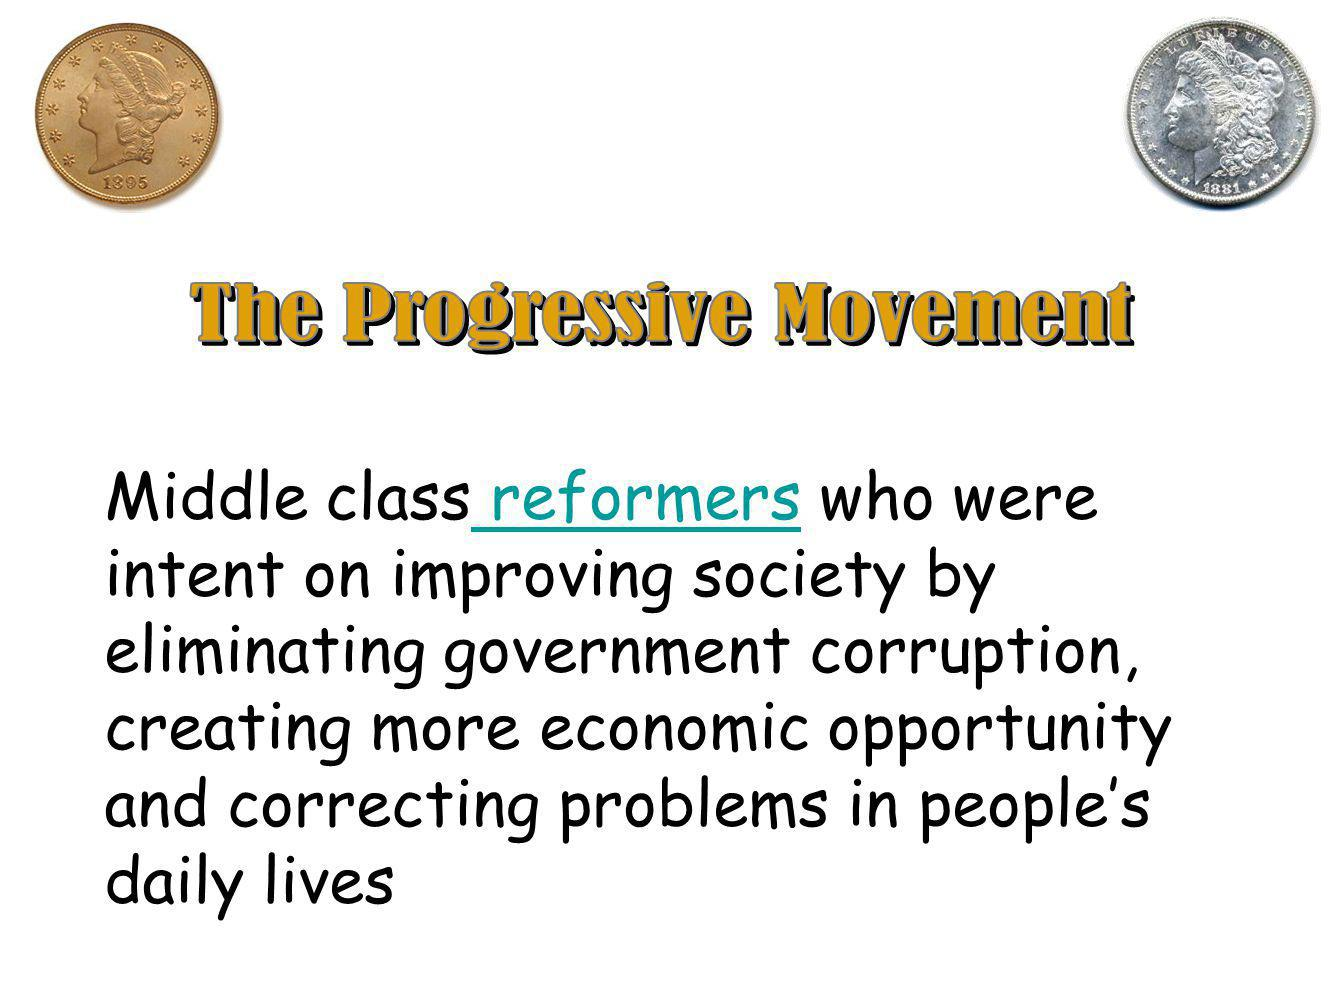 Middle class reformers who were intent on improving society by eliminating government corruption, creating more economic opportunity and correcting problems in people's daily lives reformers